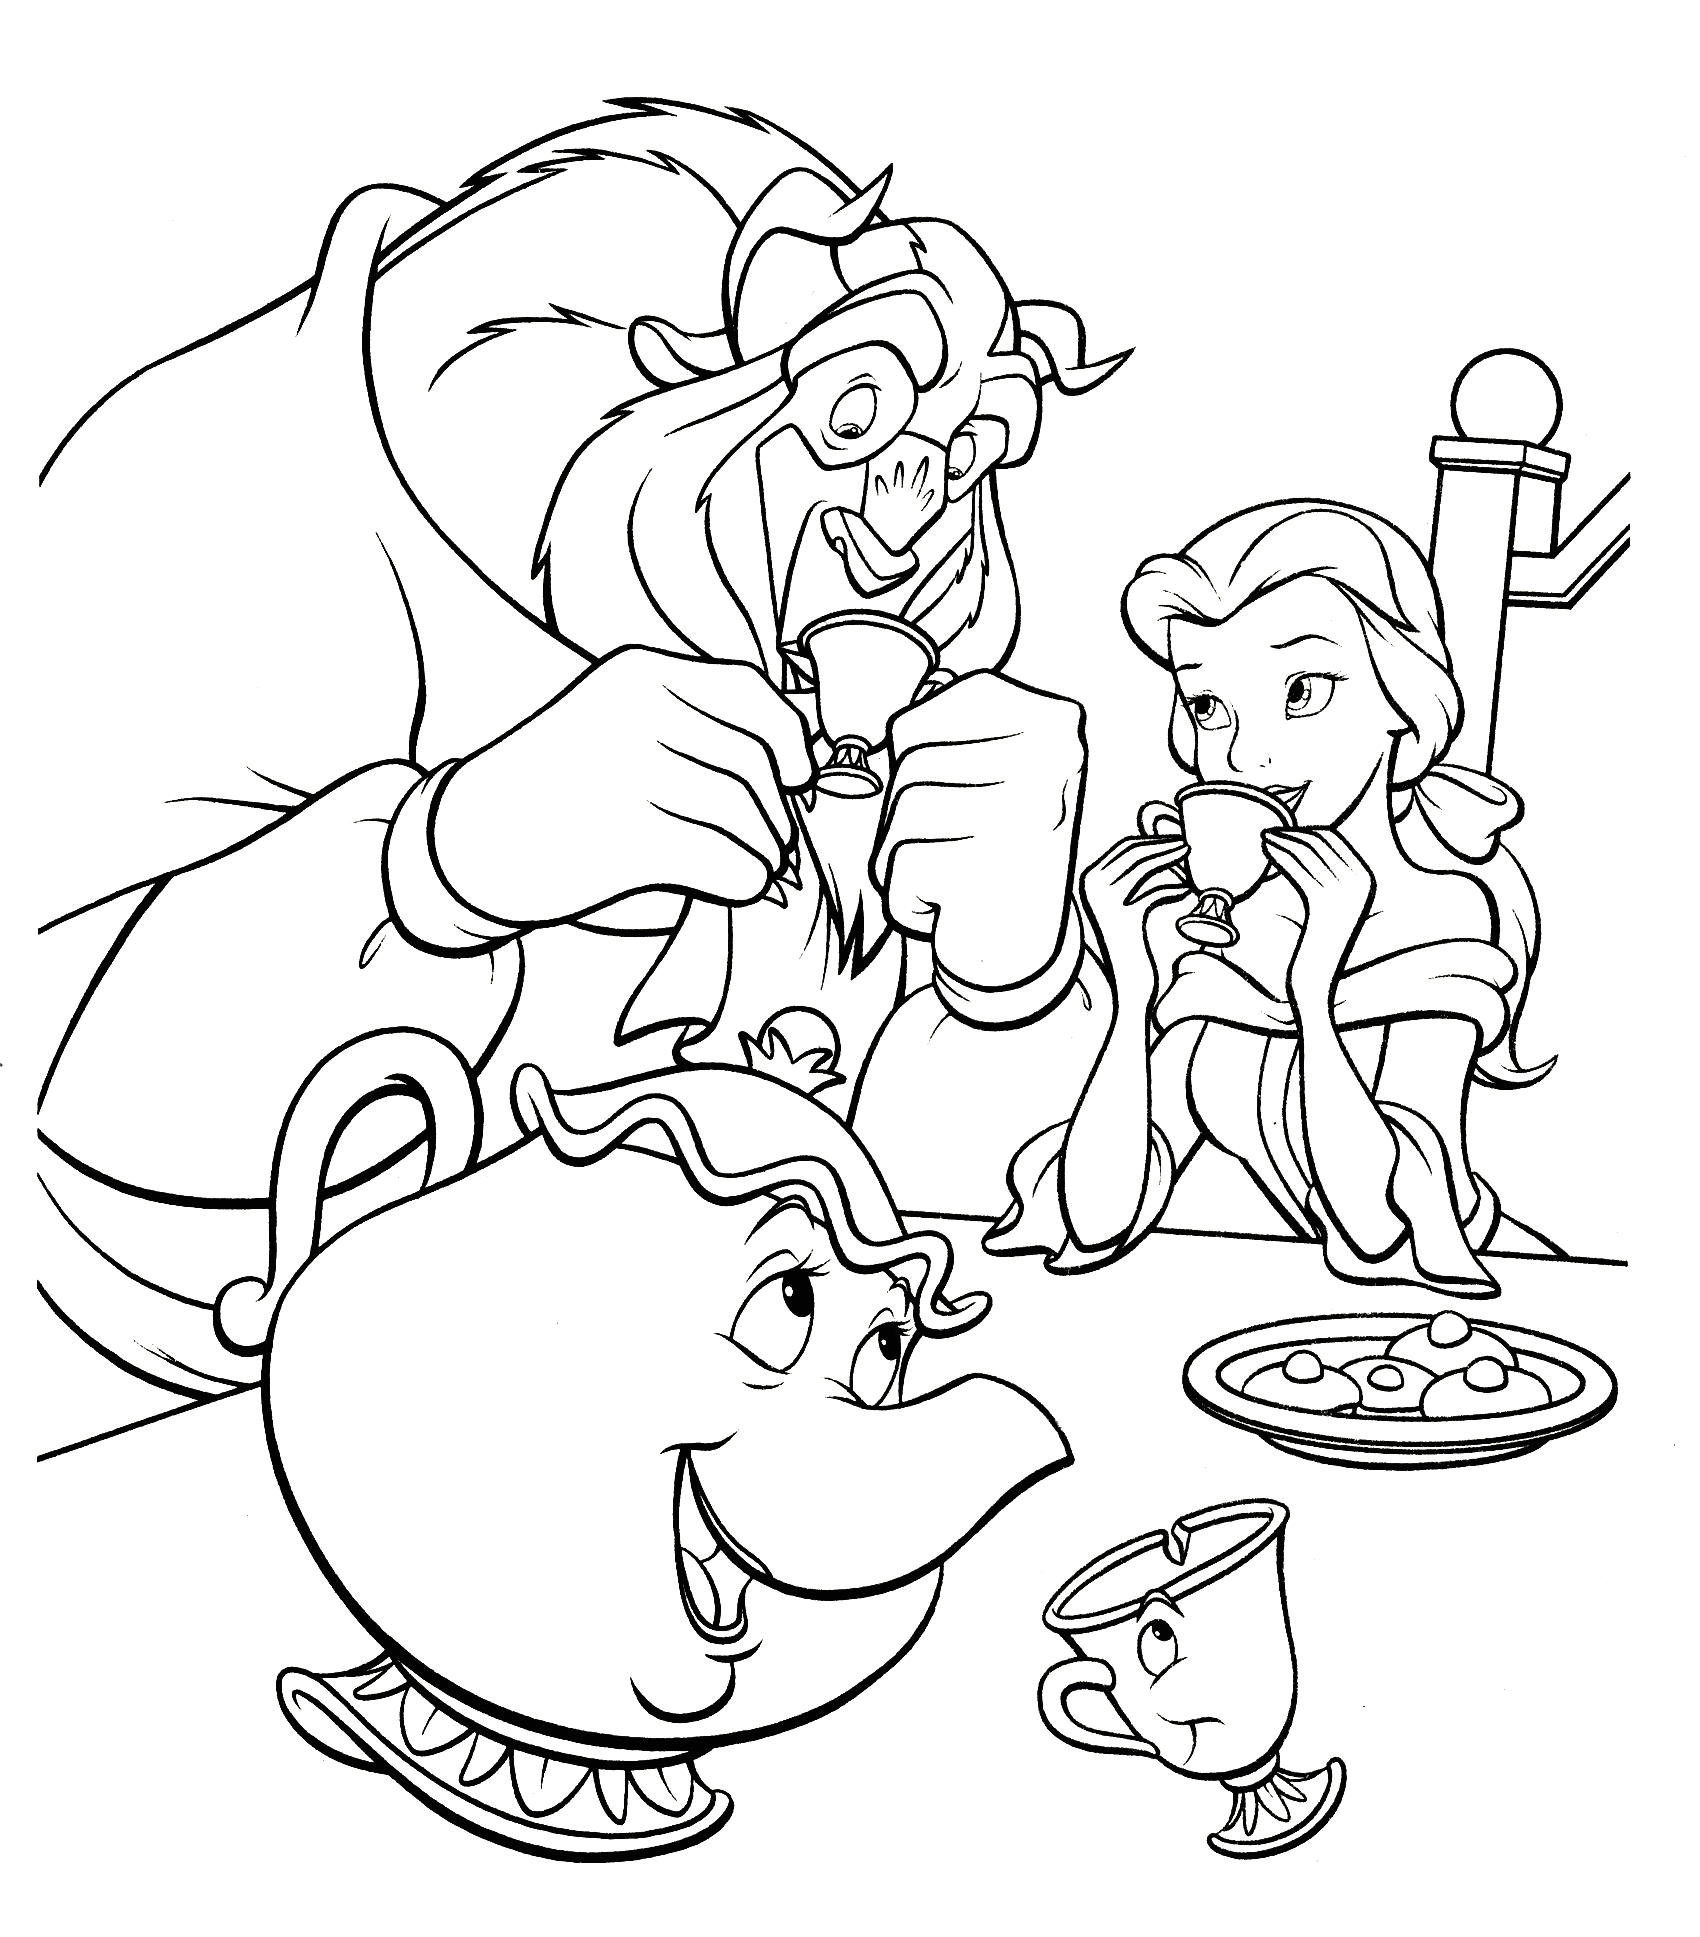 Beast From Beauty and the Beast Coloring Pages Beauty and the Beast Have Dinner Coloring Pages